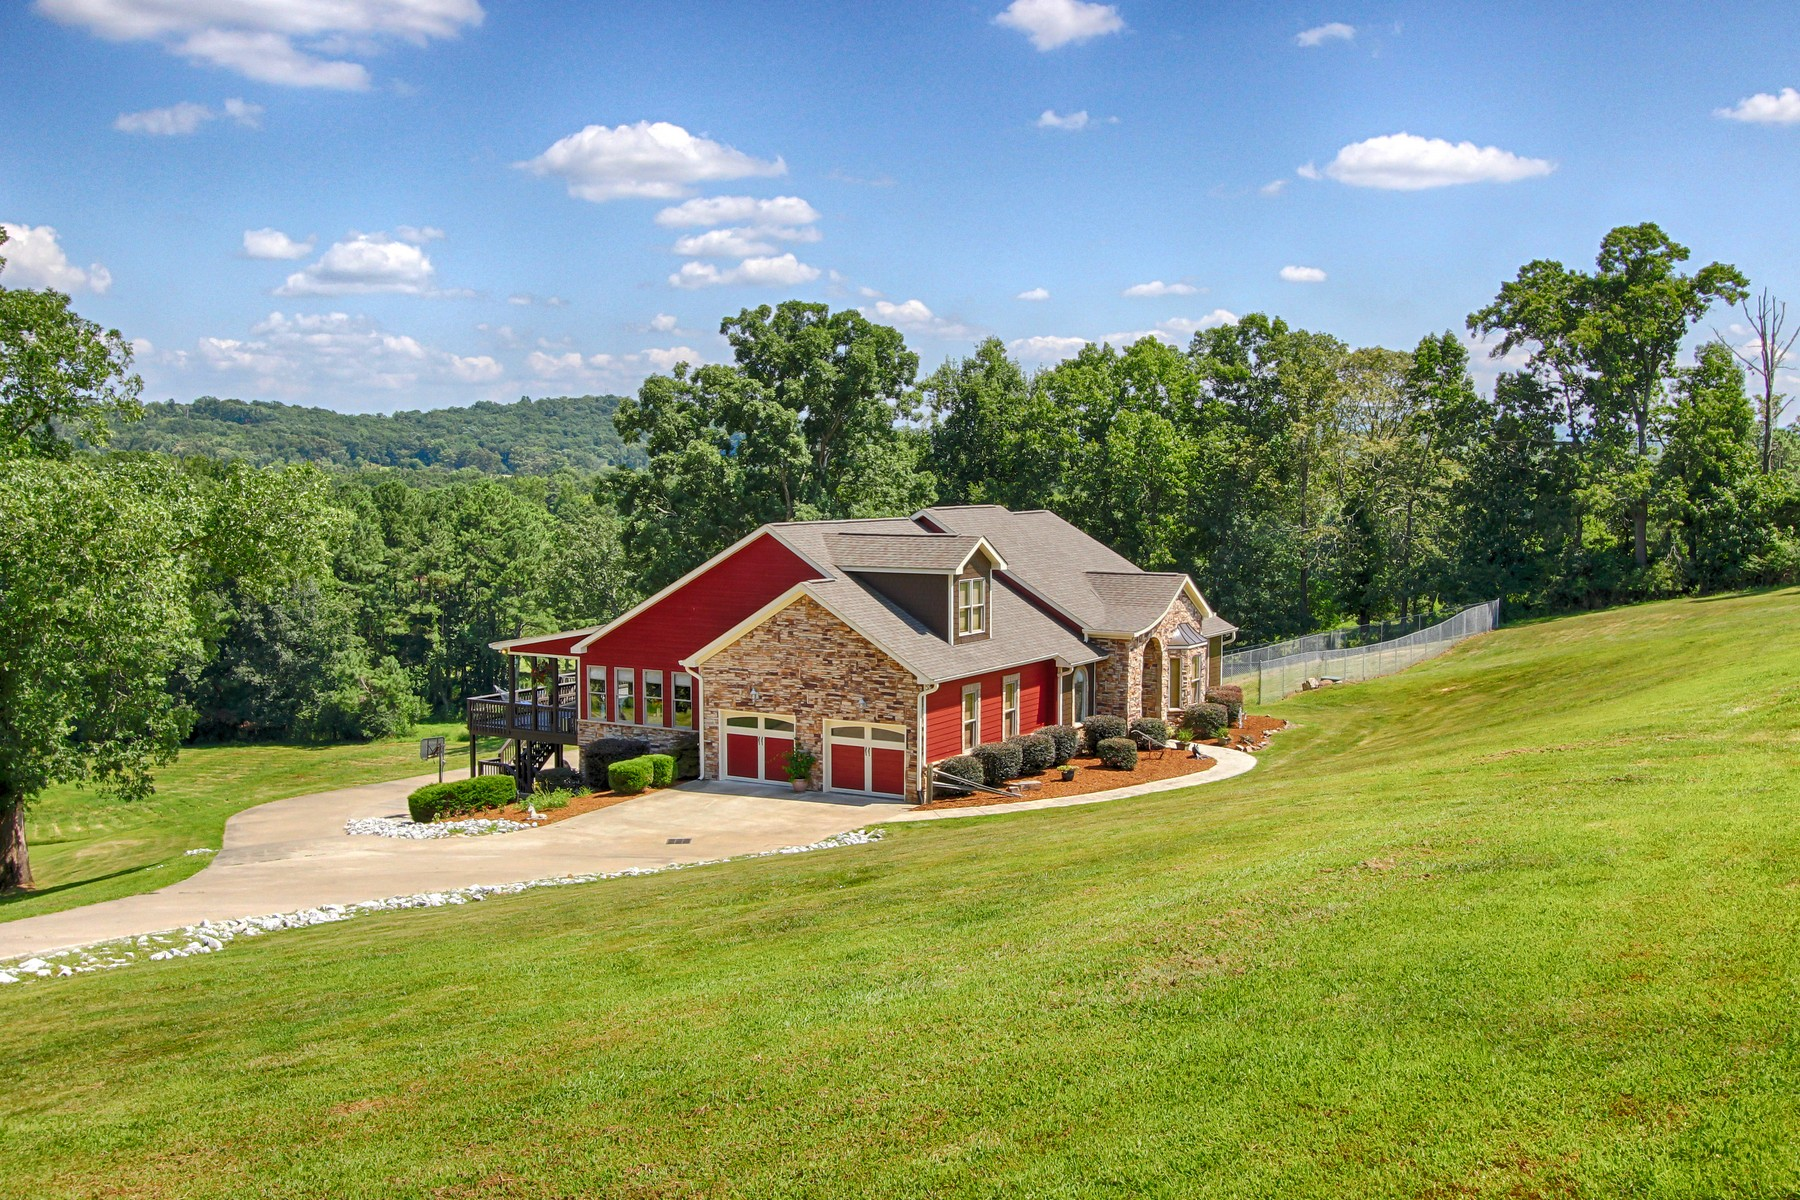 Property For Sale at An Equestrian Retreat in the North Georgia Mountains